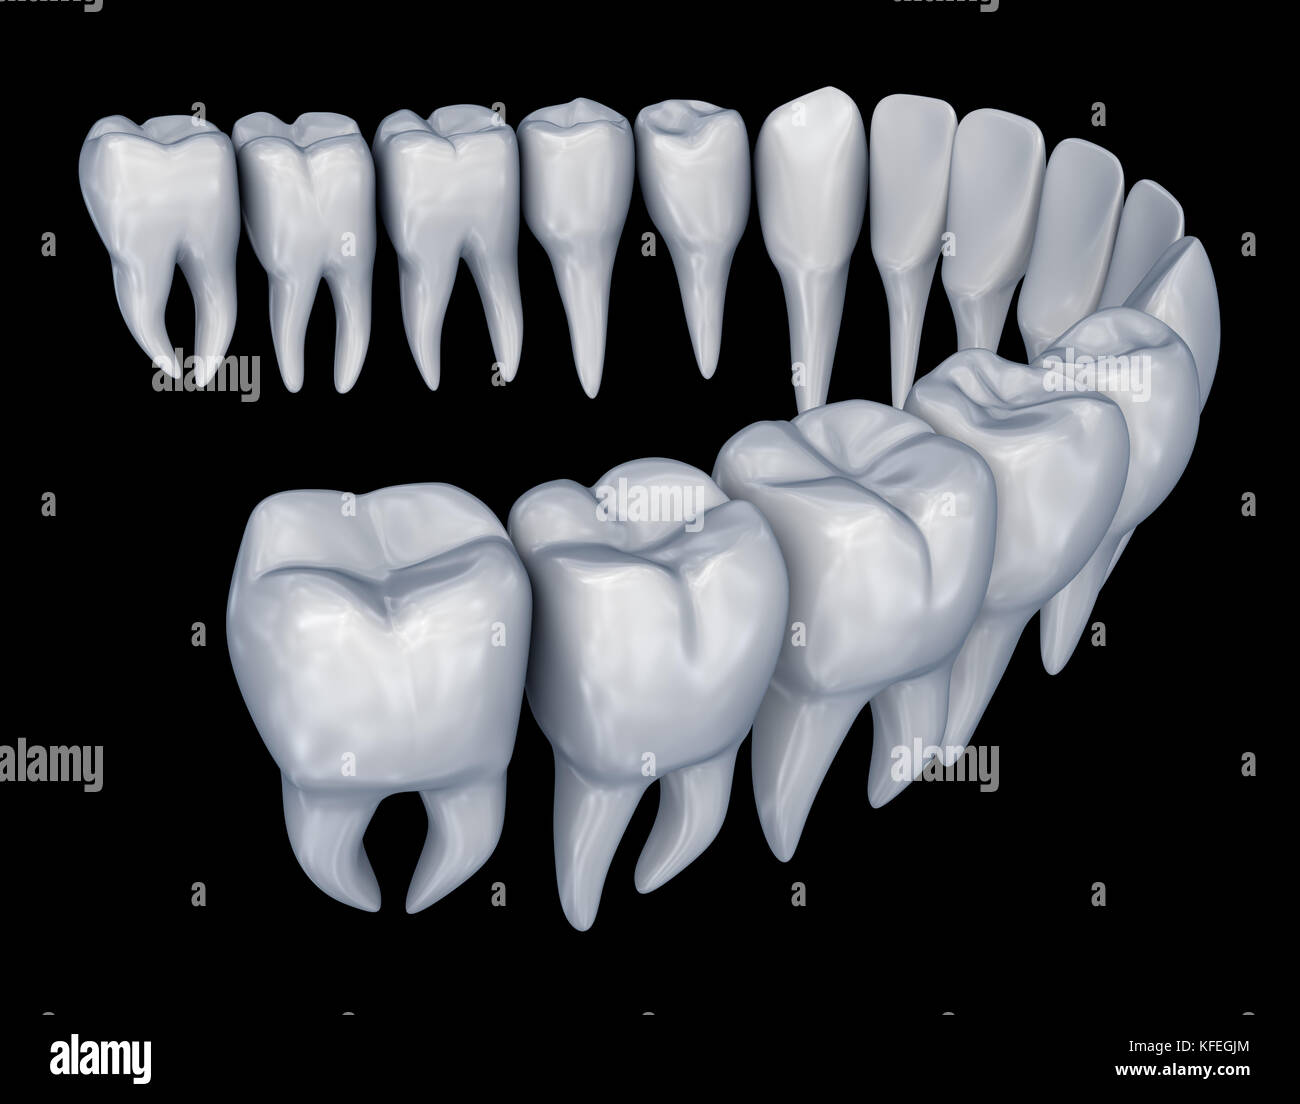 Human Teeth 3d instalation. Medically accurate dentistry anatomy ...